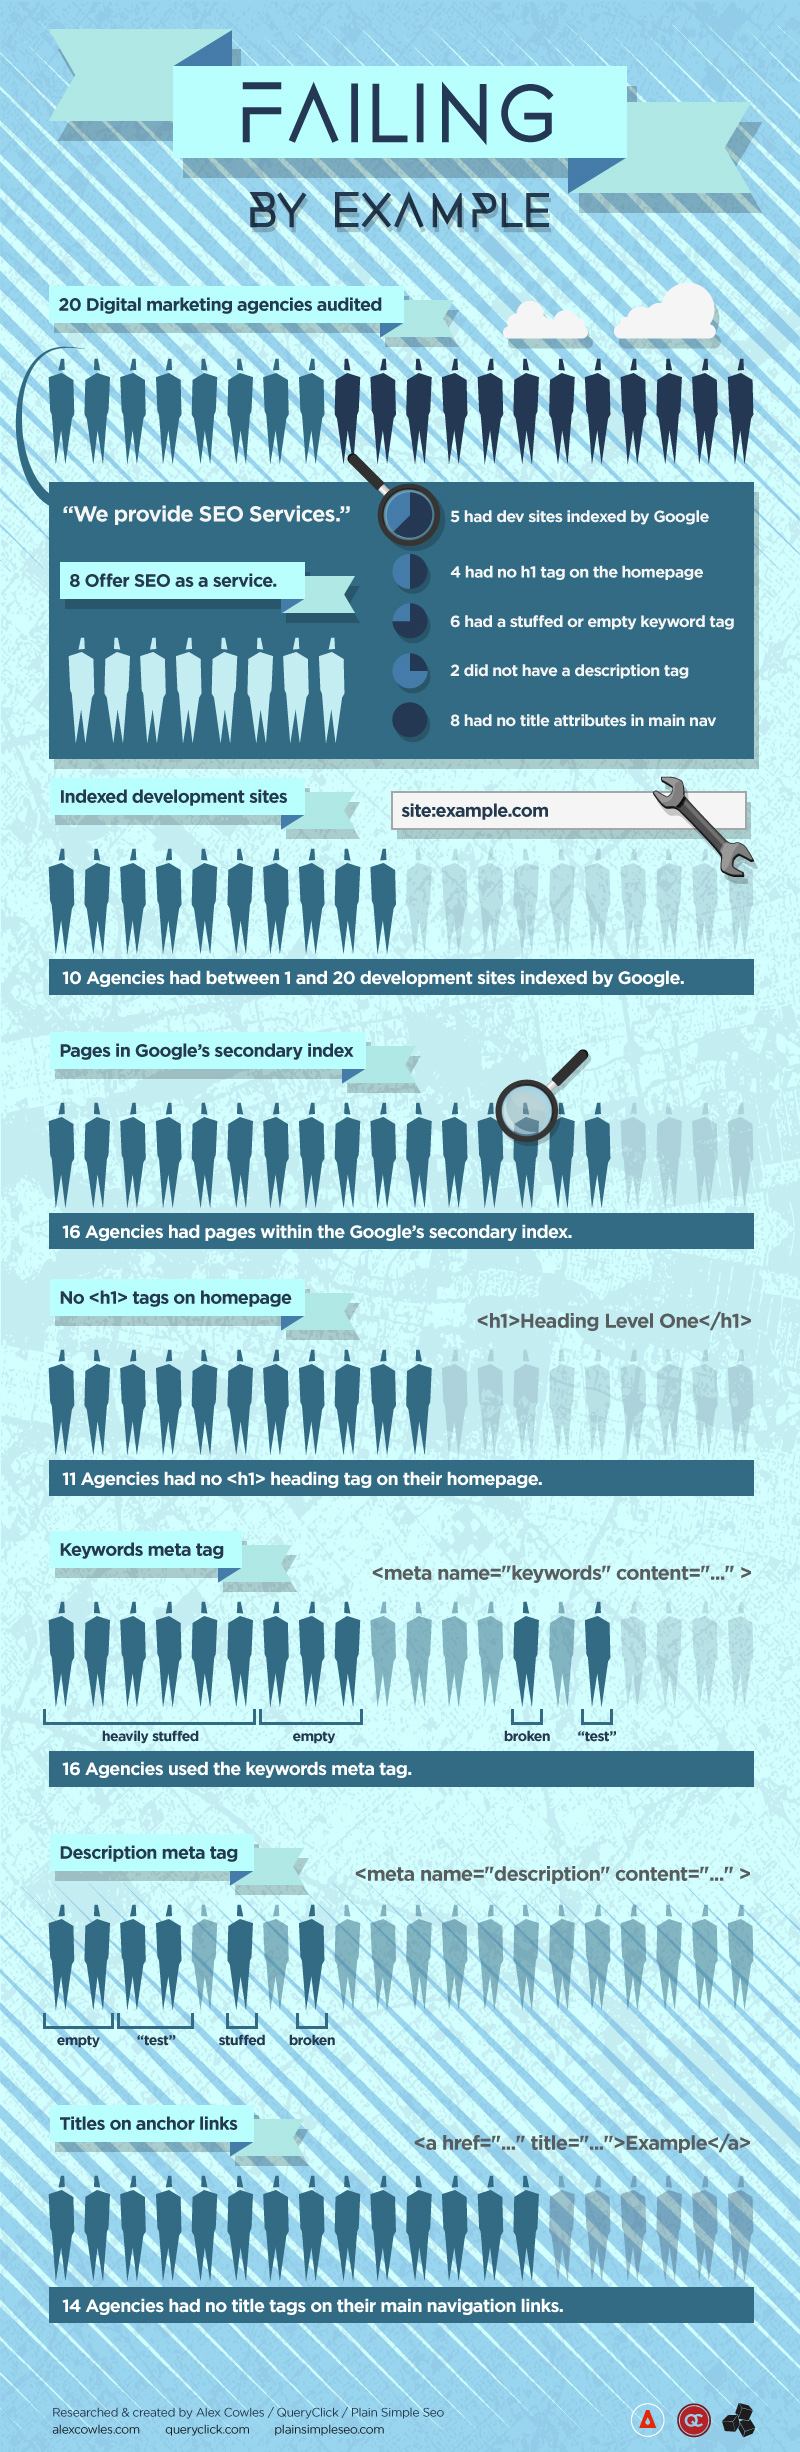 Fantastic new infographic on SEO fails by our designer, Alex.